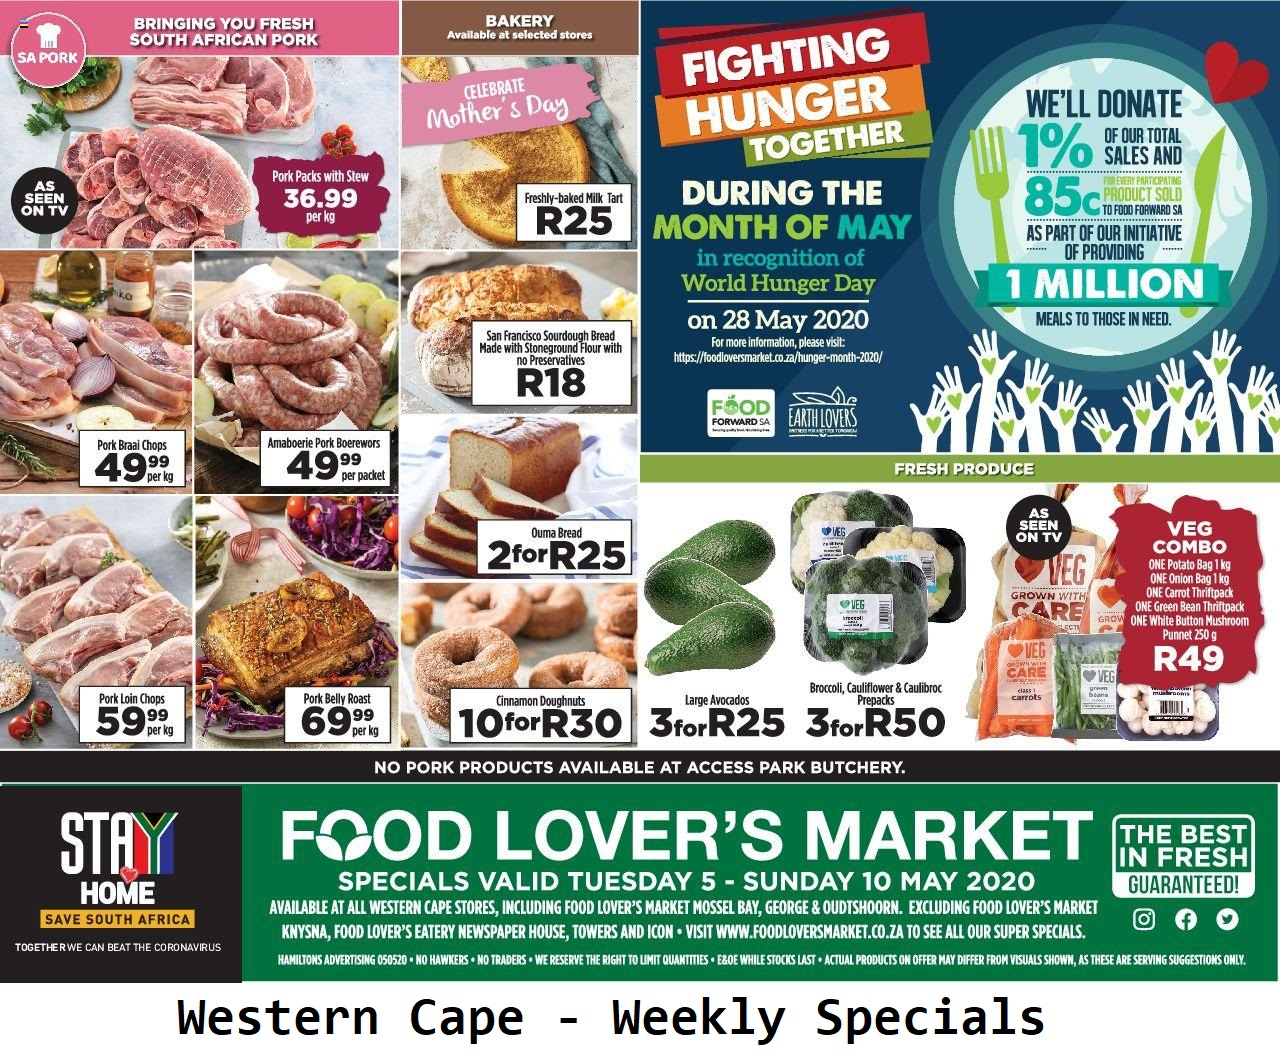 food lovers specials weekly 5 may 2020